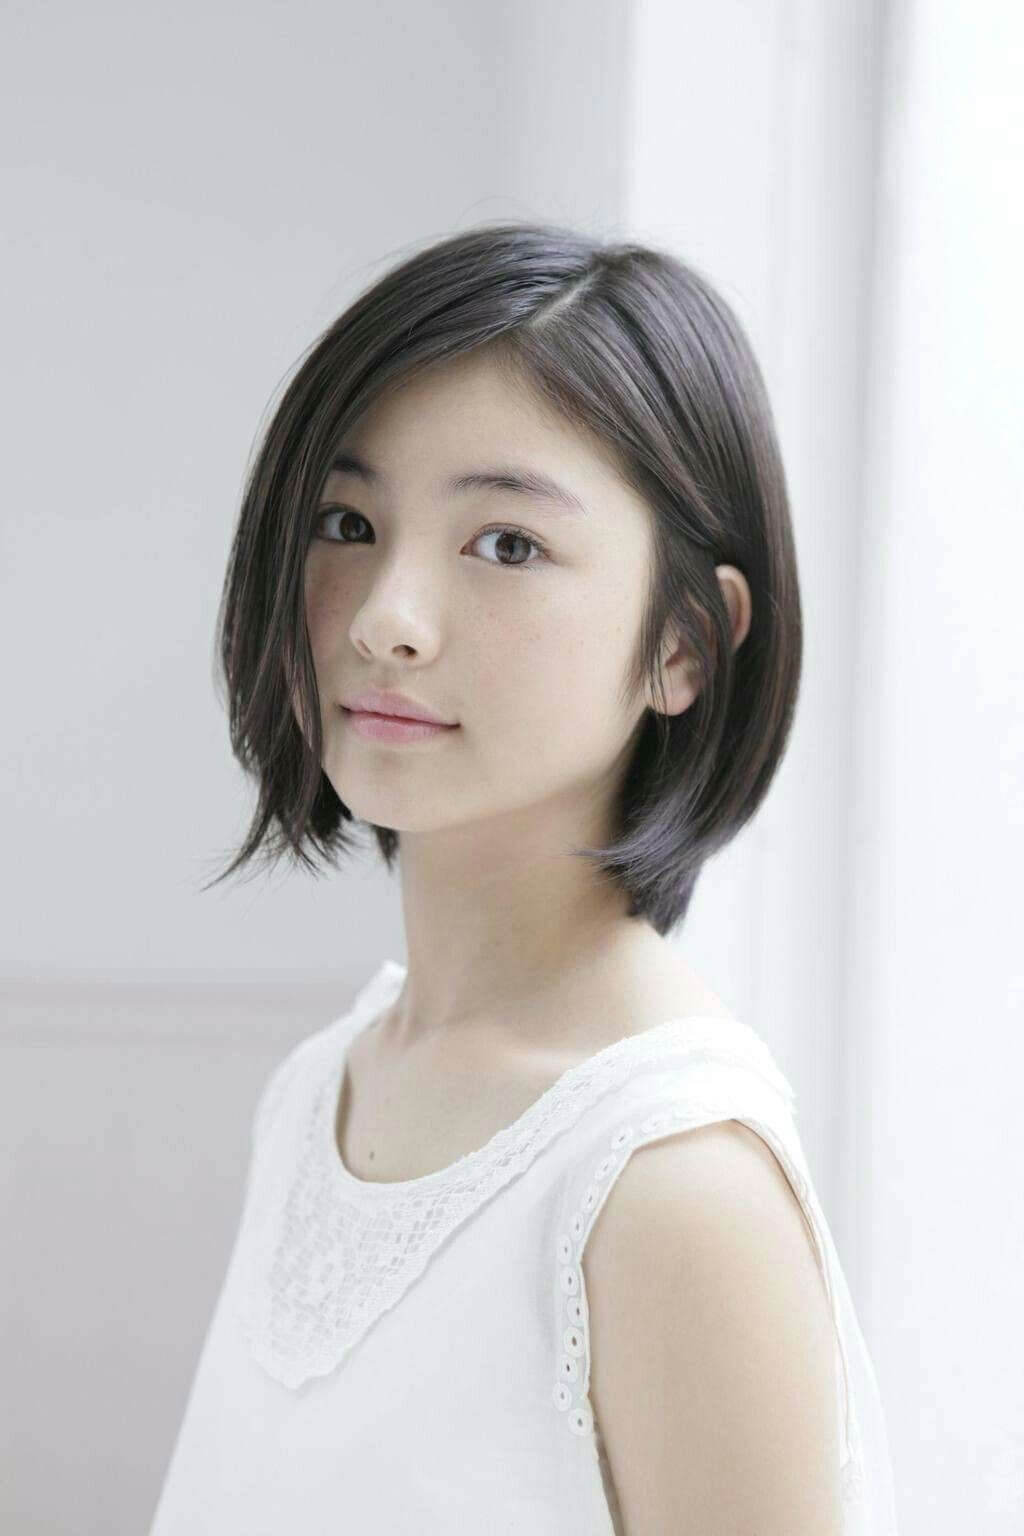 Korean Short Haircuts for Round Faces - 10+